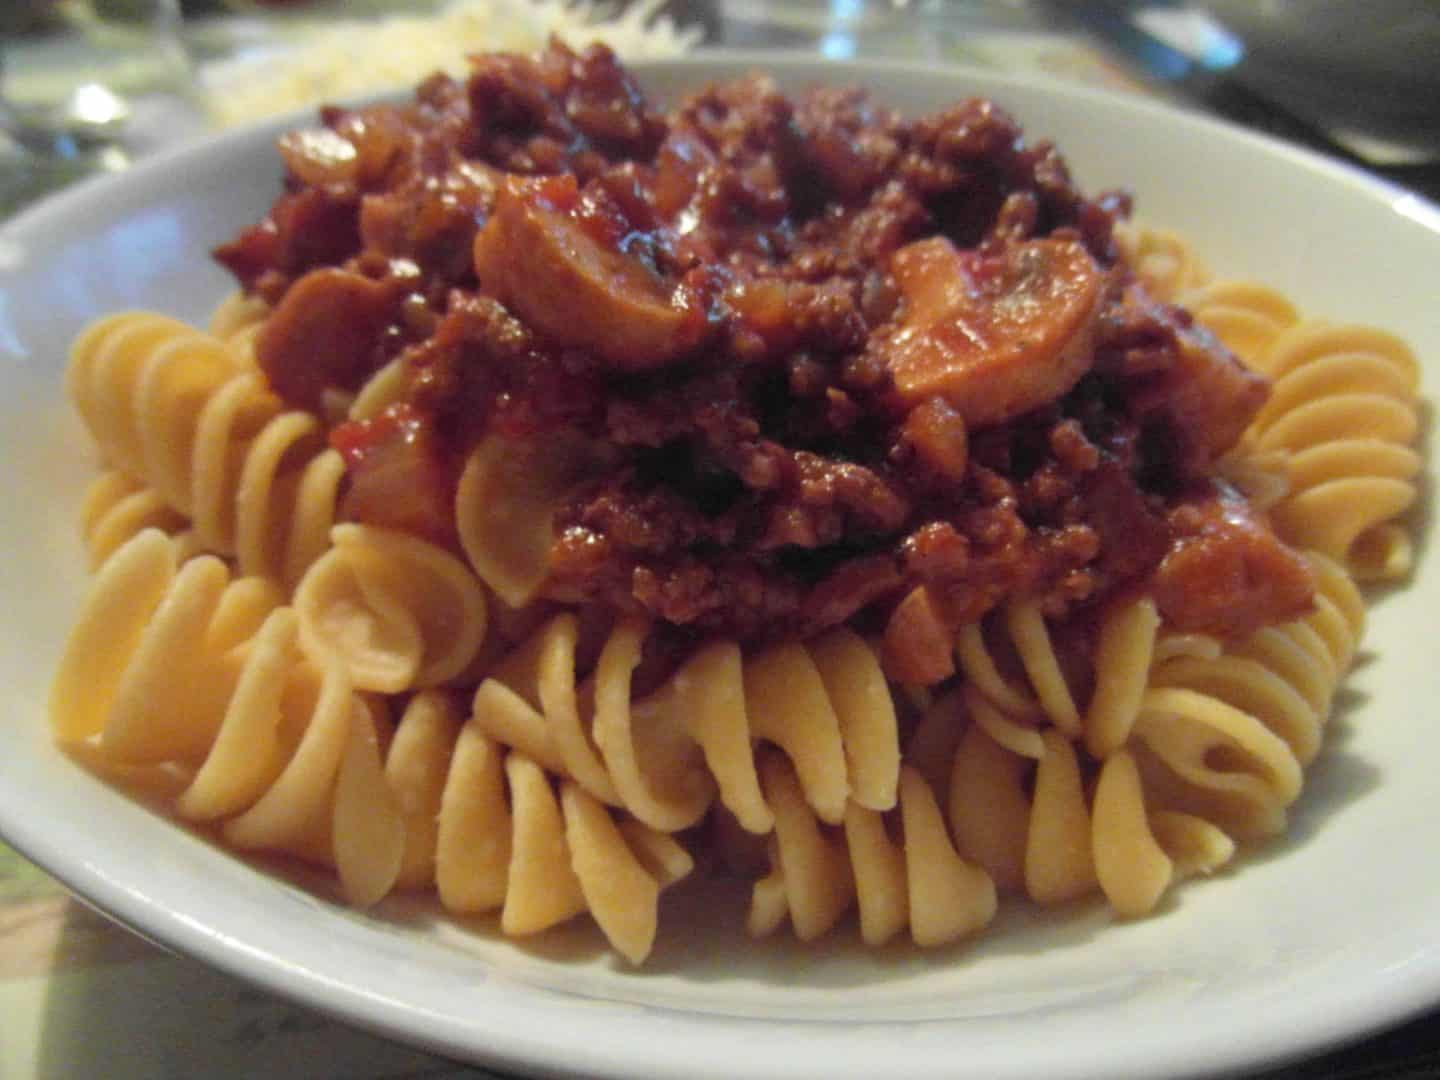 Chickpea pasta – something a bit different!